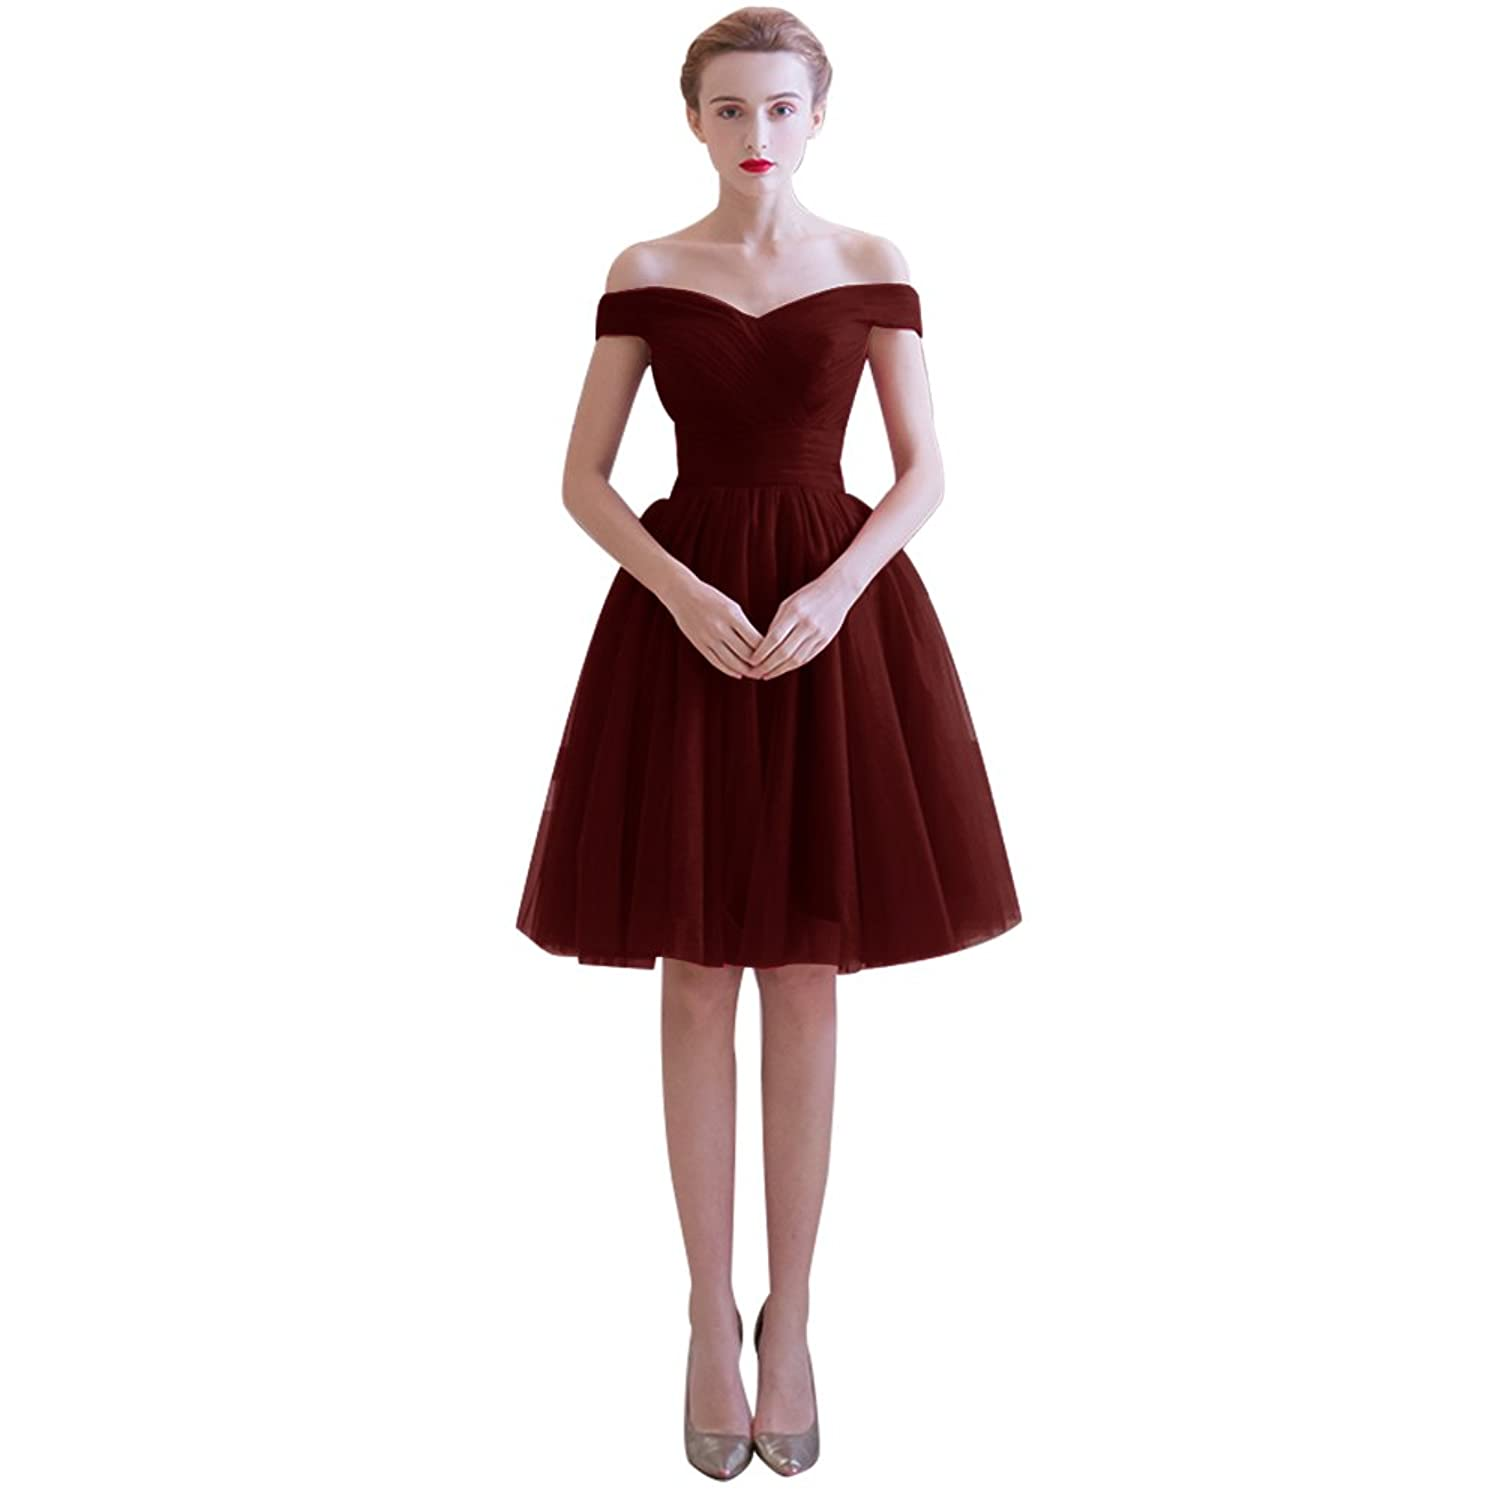 Dressystar Short Tulle Bridesmaid Party Dresses A Line Off-shouler Gowns Slim Waist